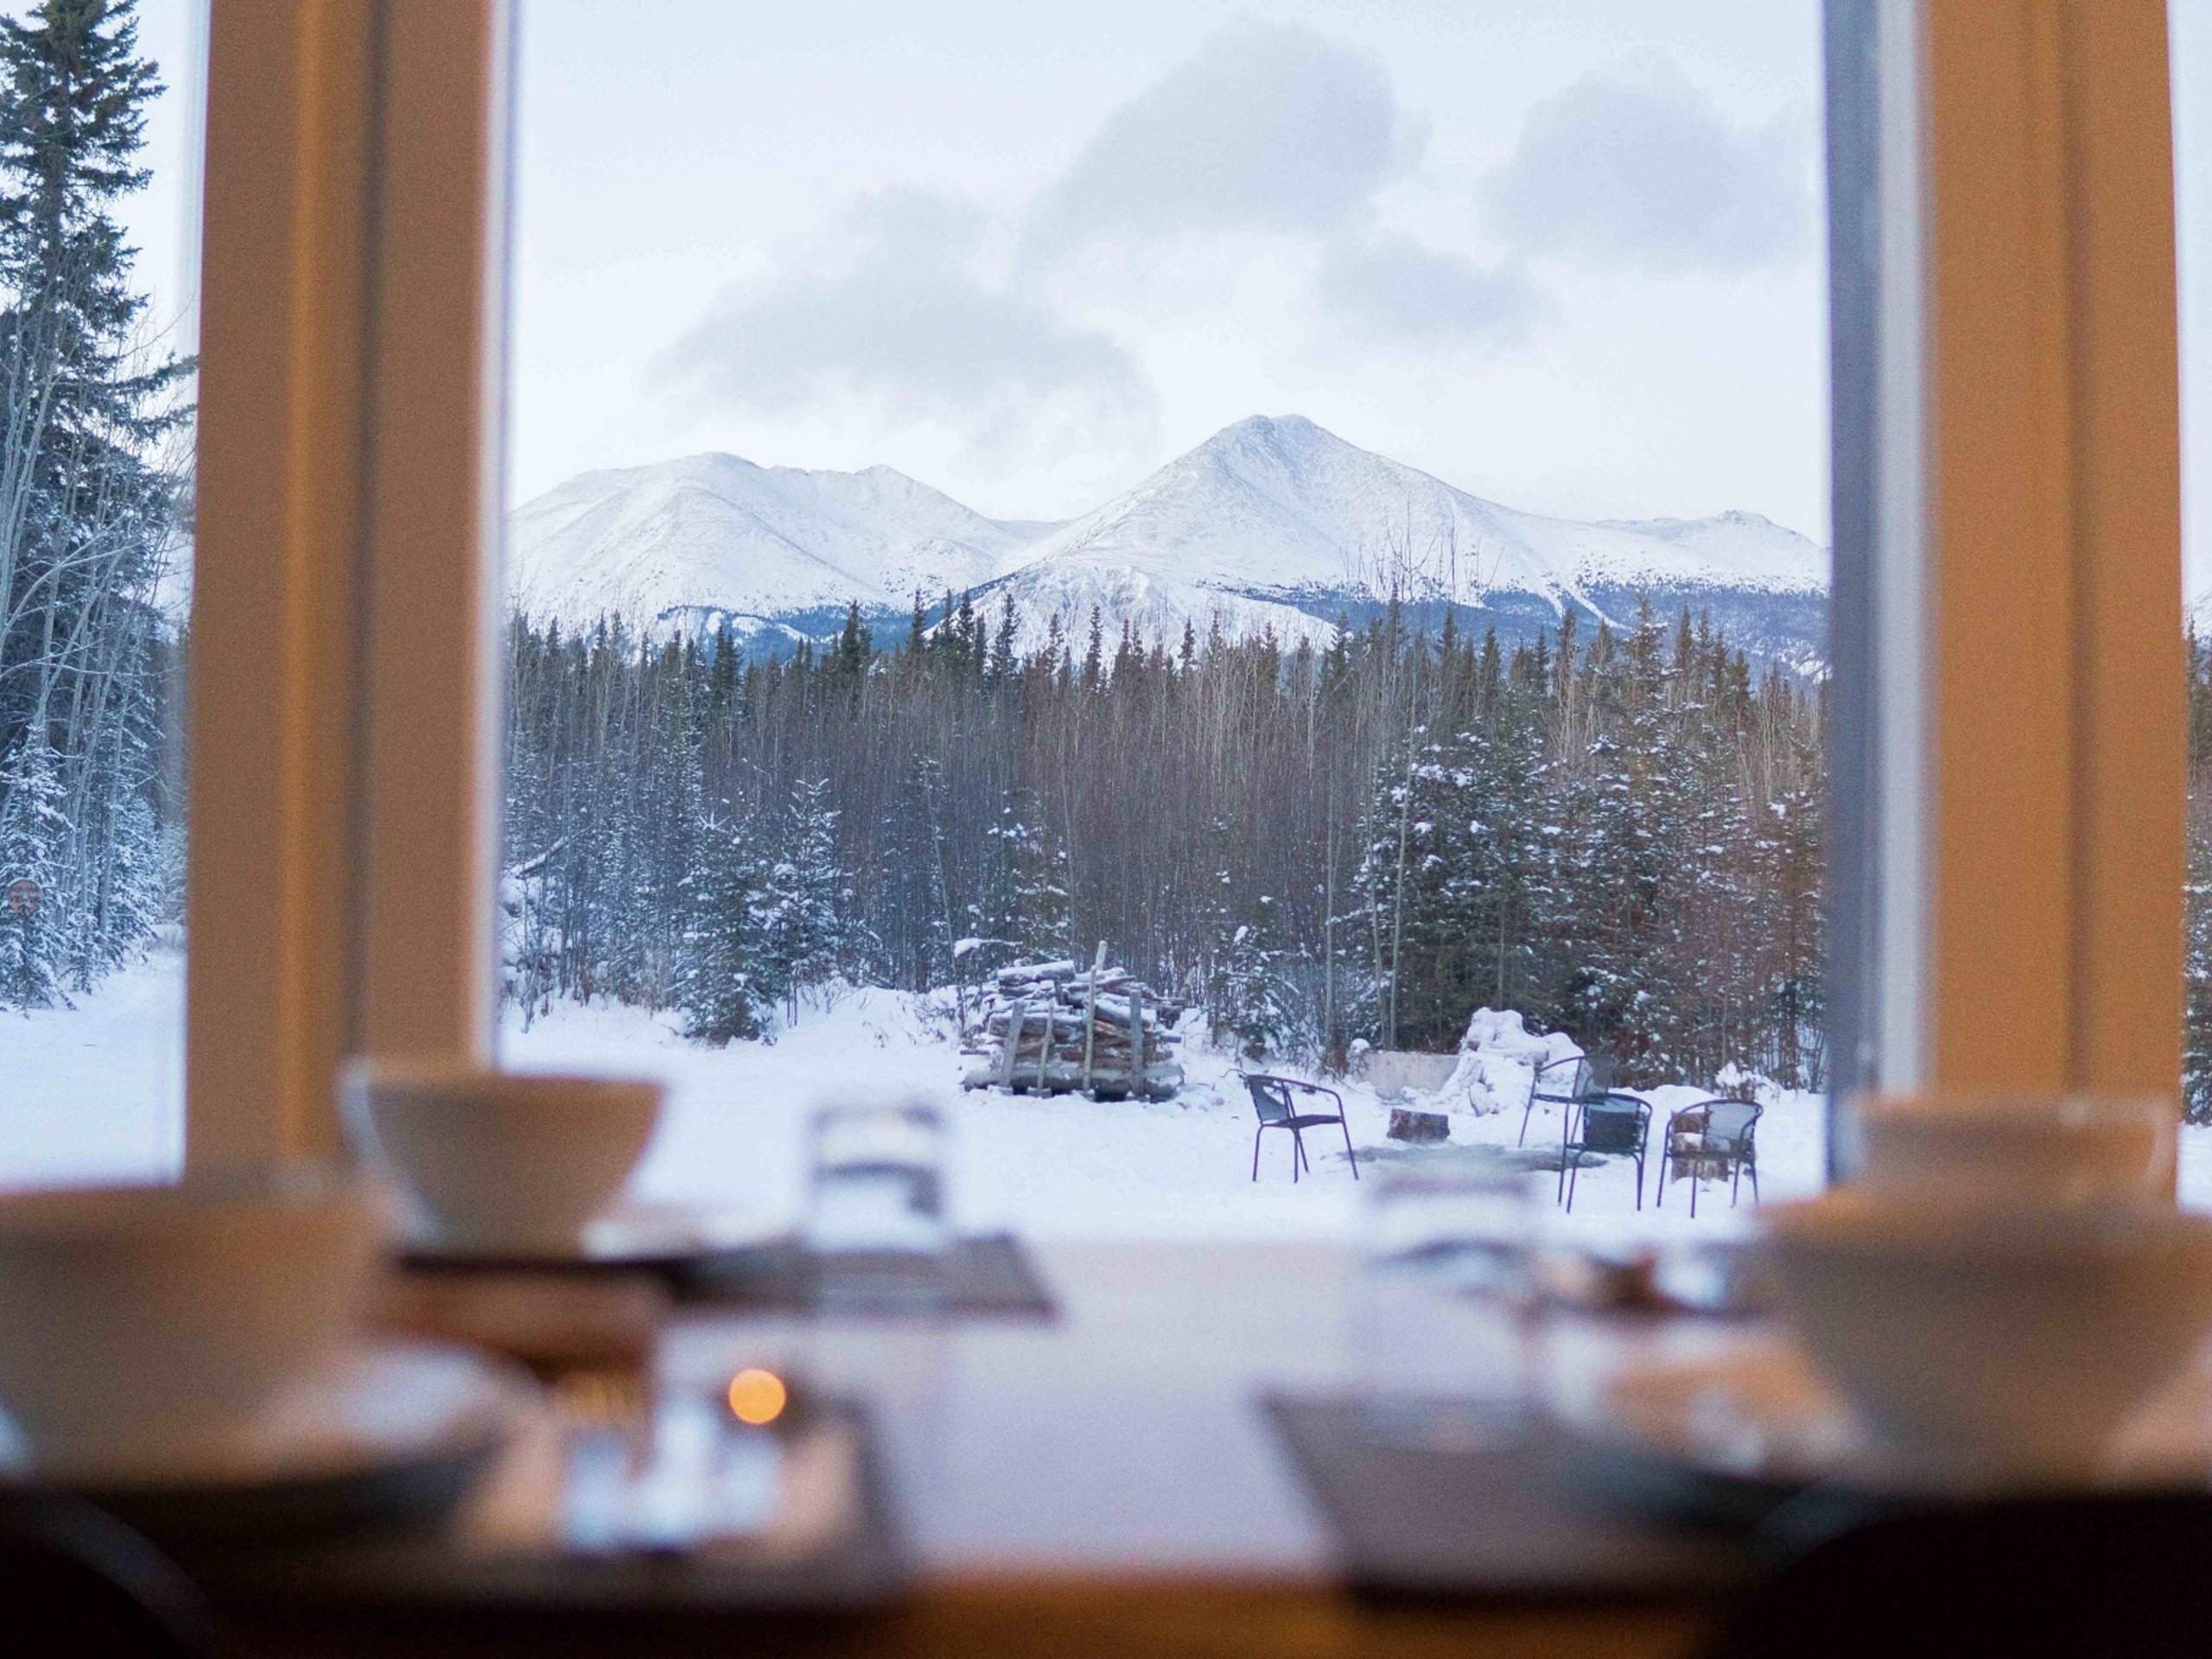 Lunch with great views in Yukon during the winter